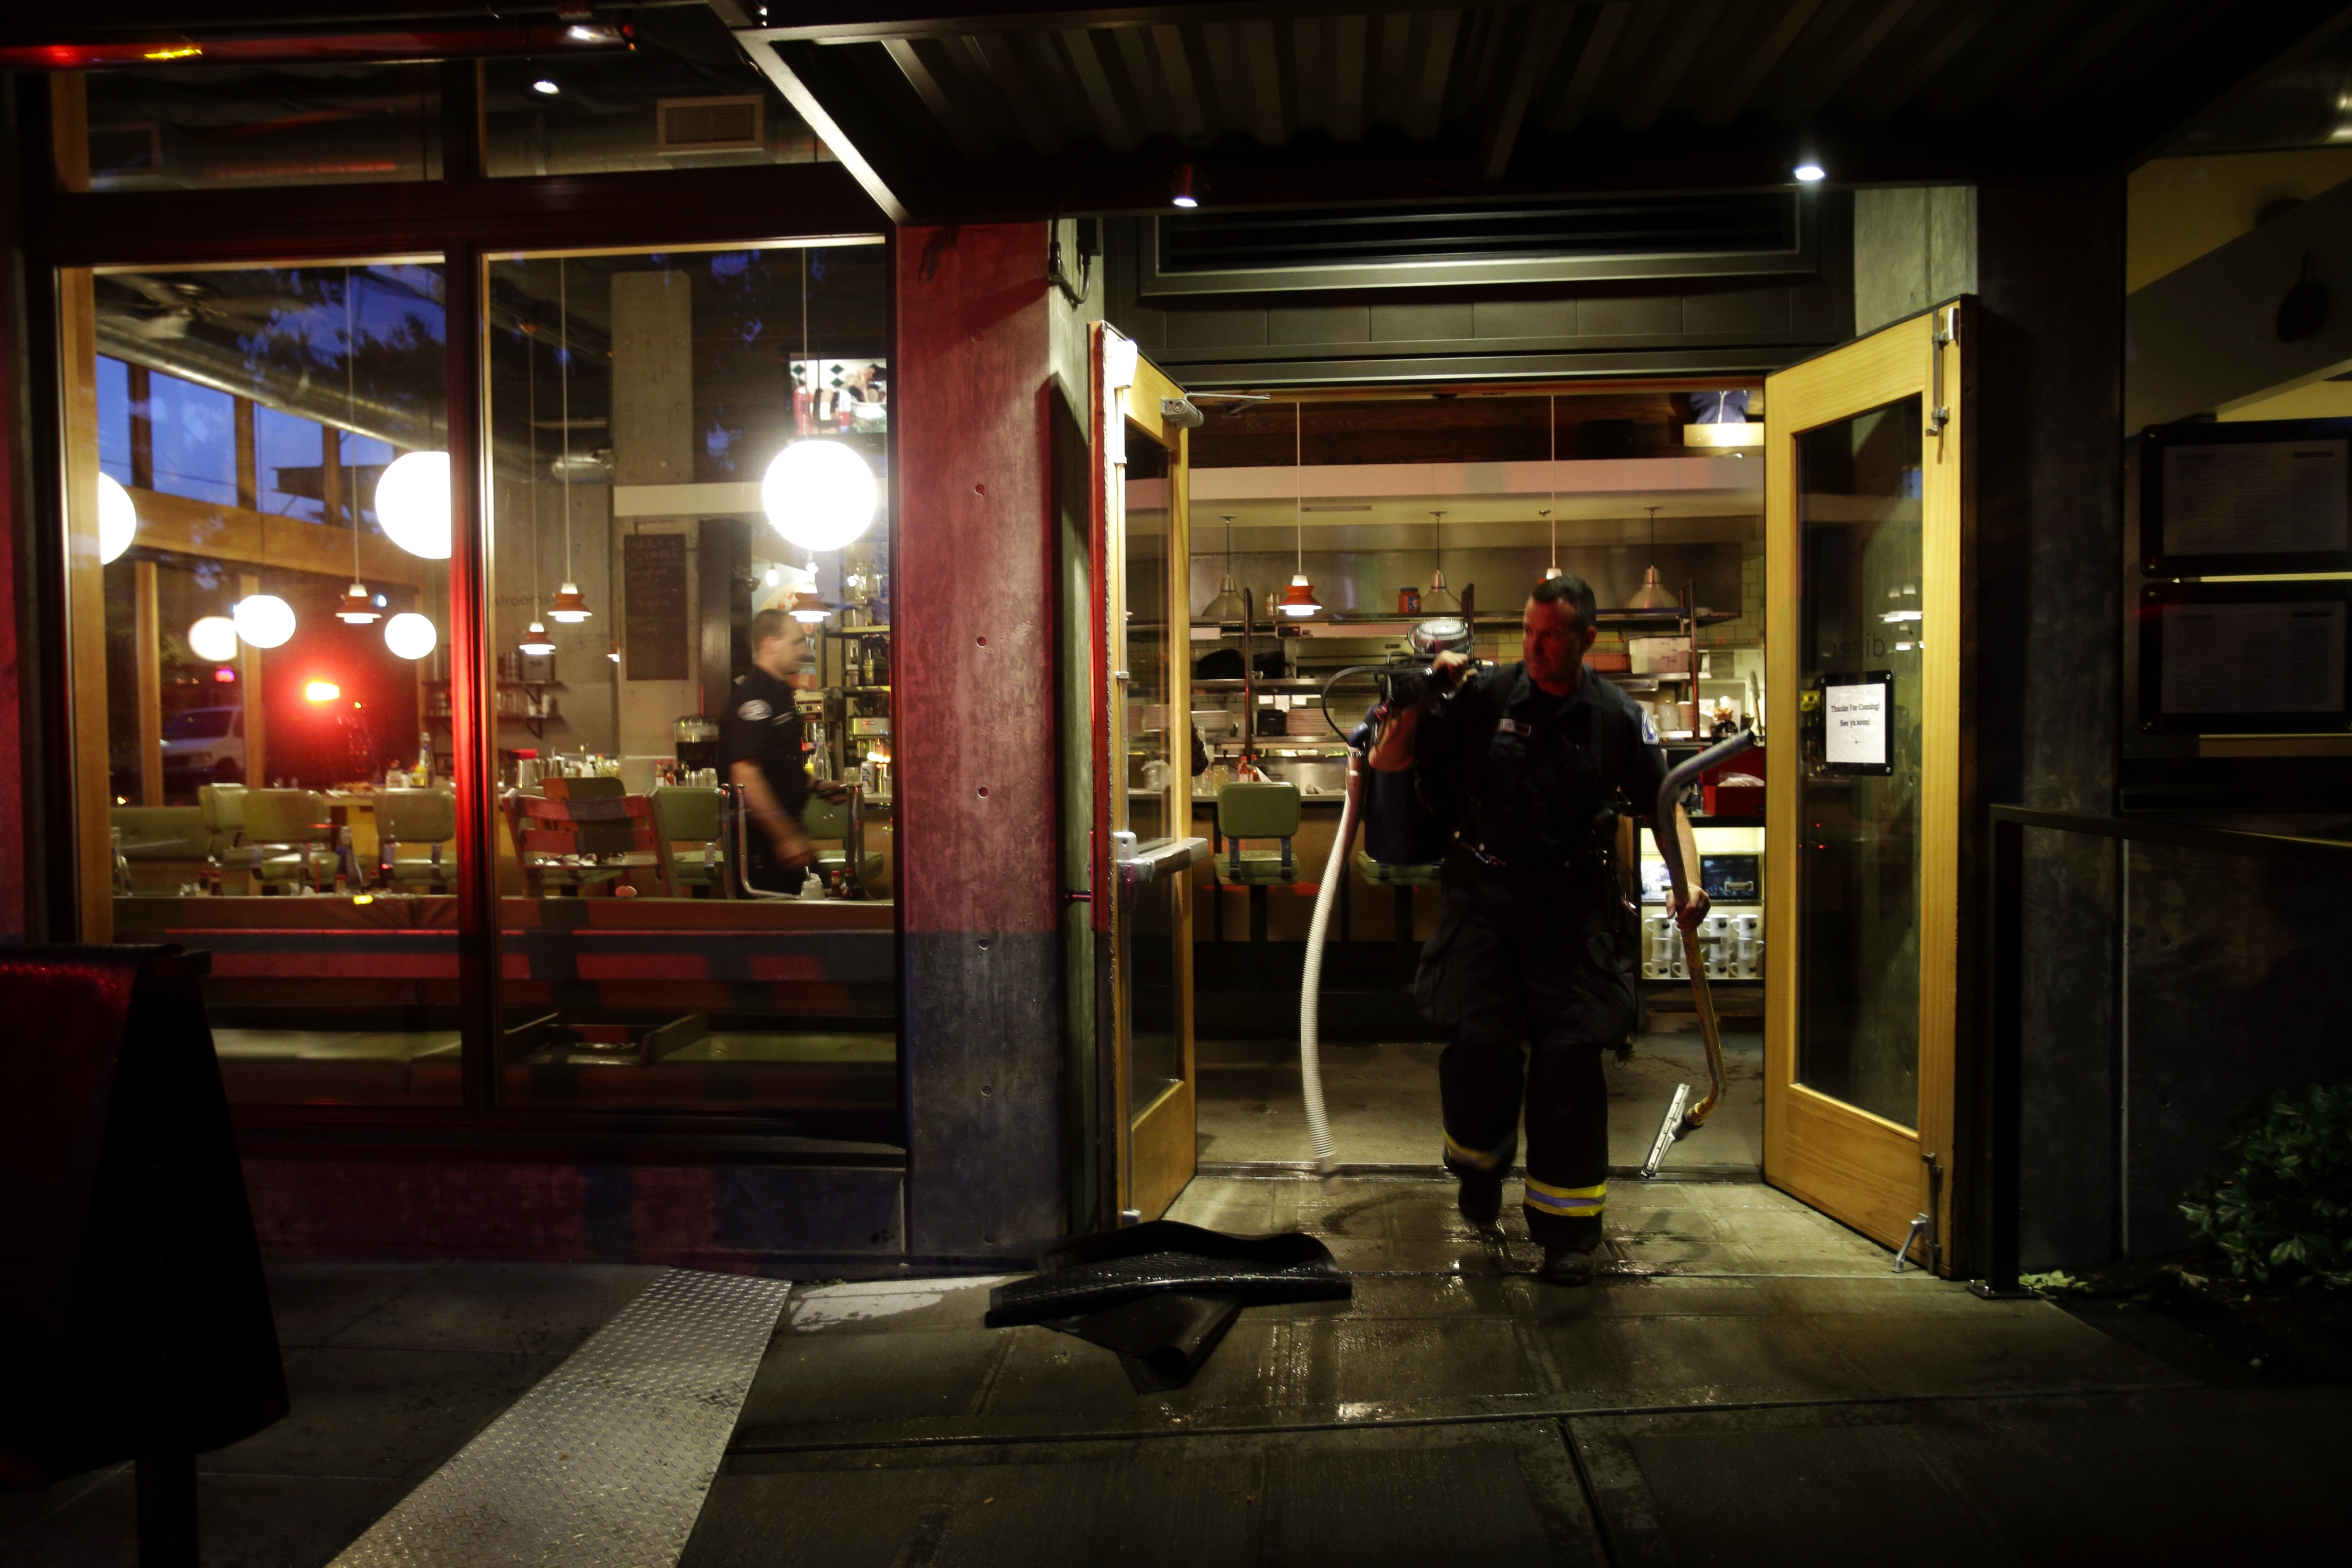 Seattle firefighters mop up a small fire at the Skillet Diner on Capitol Hill Thursday evening. The restaurant's crew said a gas line fire was quickly extinguished, and they hope to reopen Friday morning. (Dean Rutz / The Seattle Times)